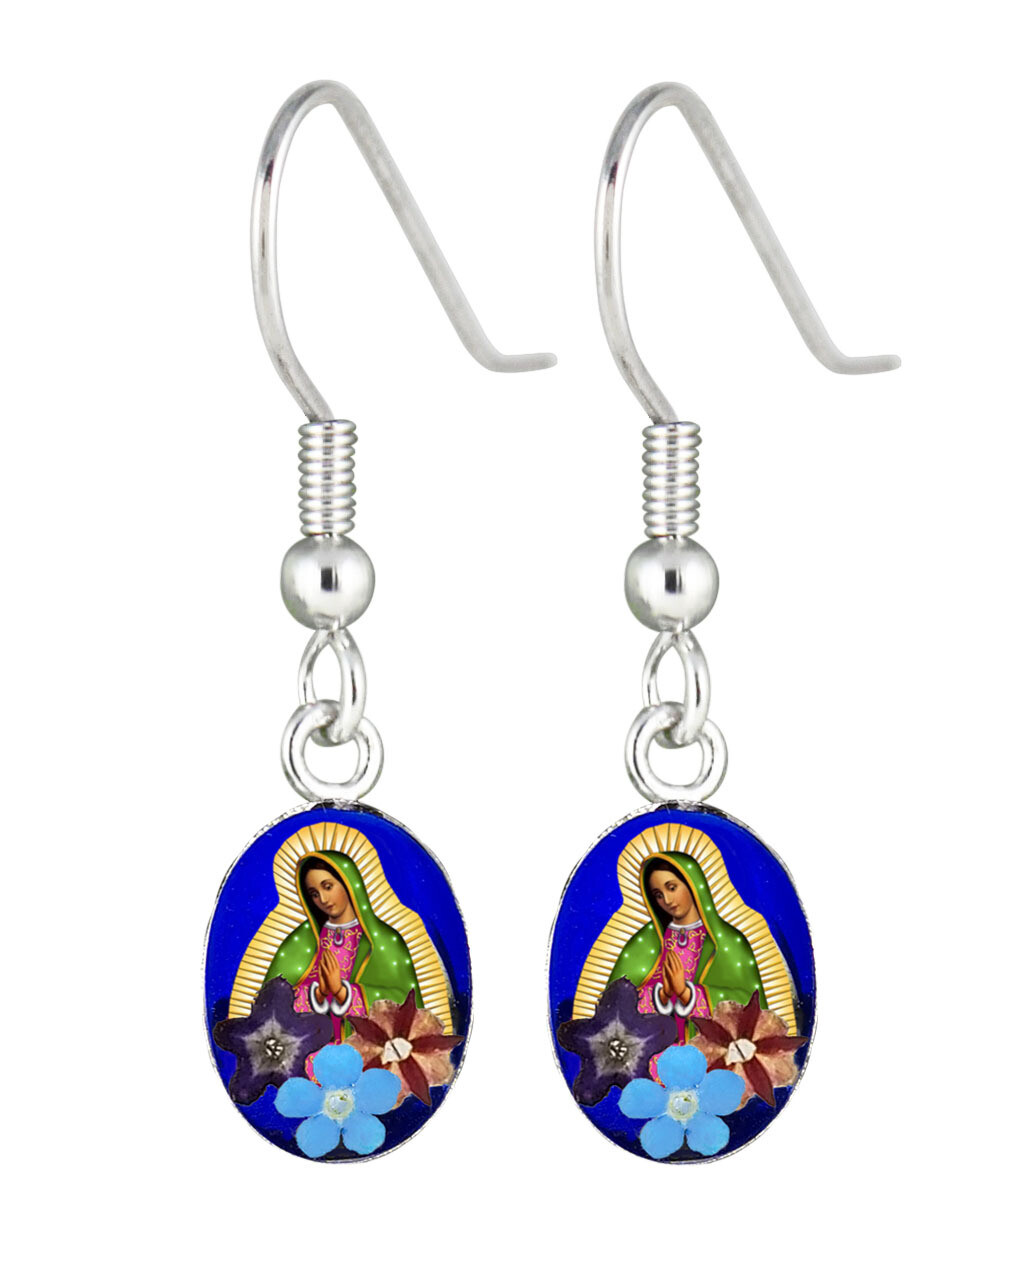 Guadalupe Virgin Oval hanging earring, Navy blue background